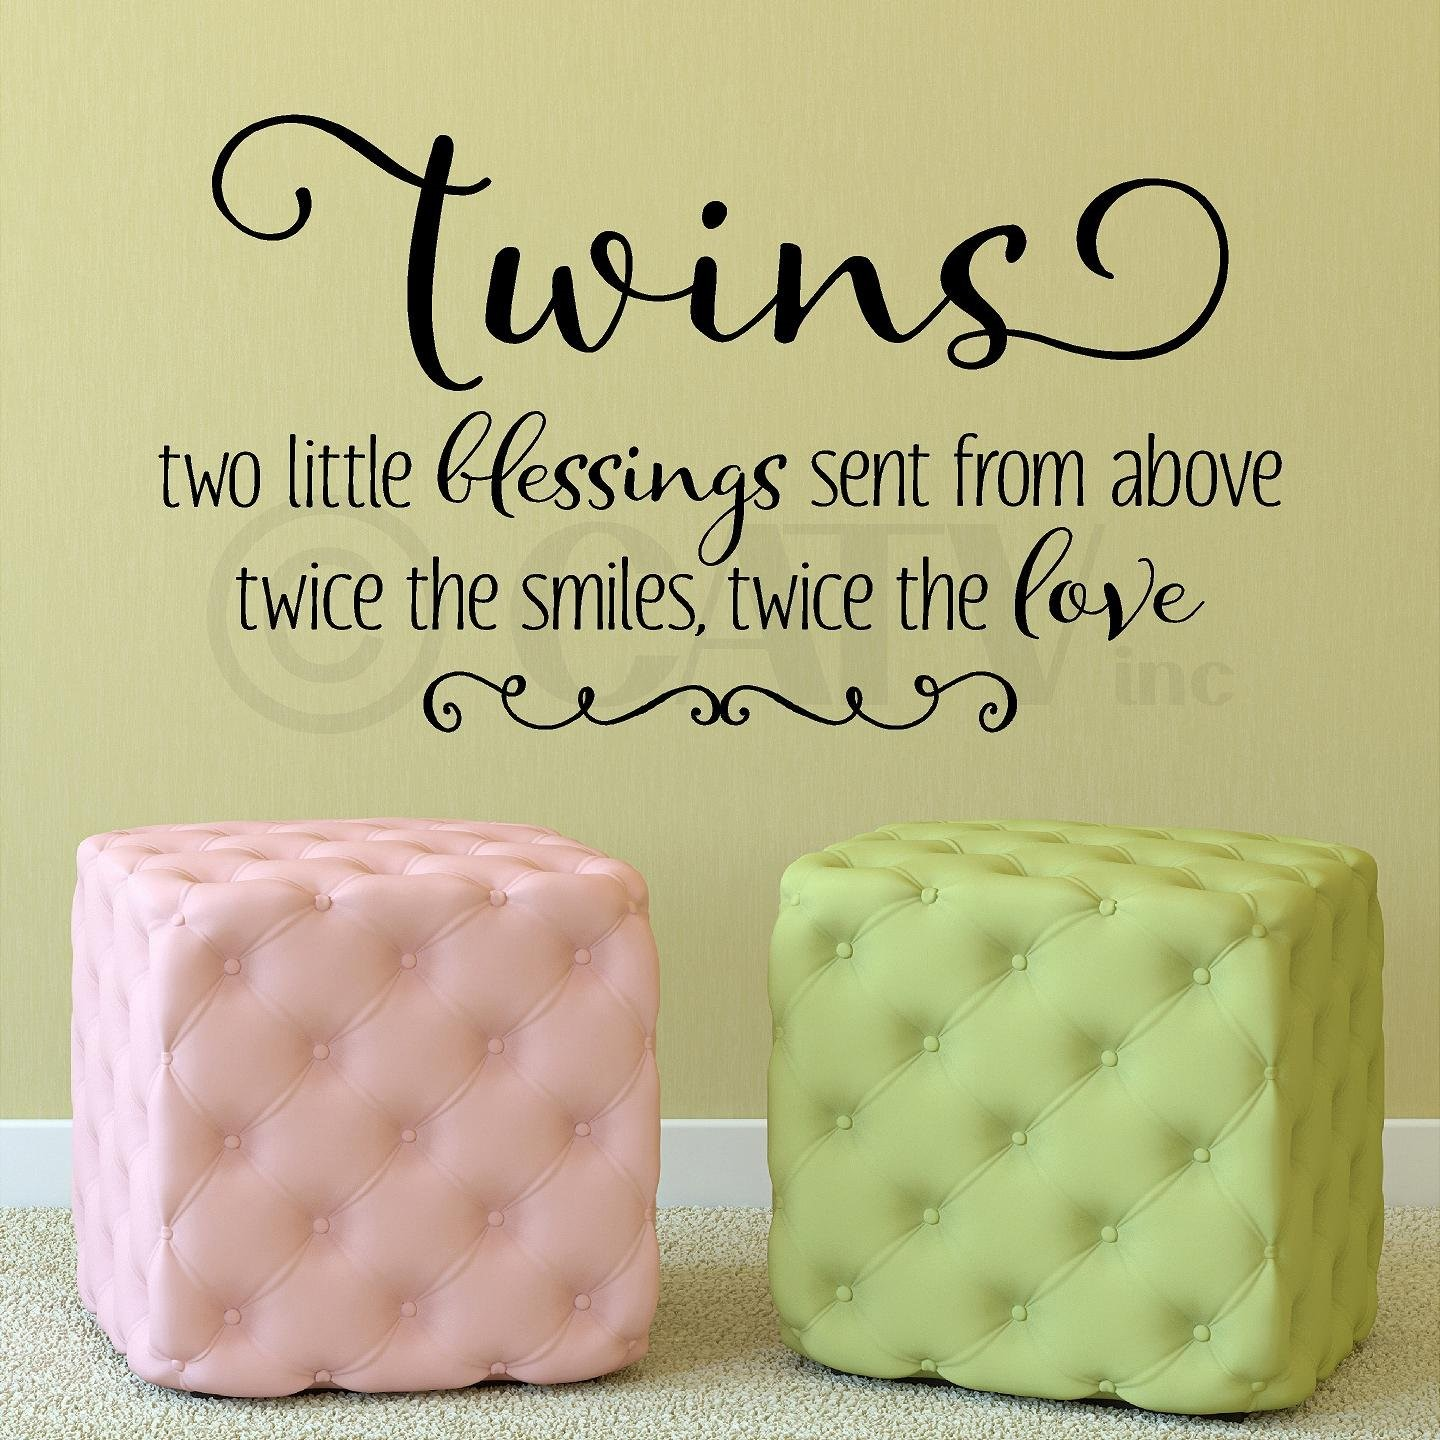 Twins Two Little Blessings Sent From Above Twice the Smiles Twice ...